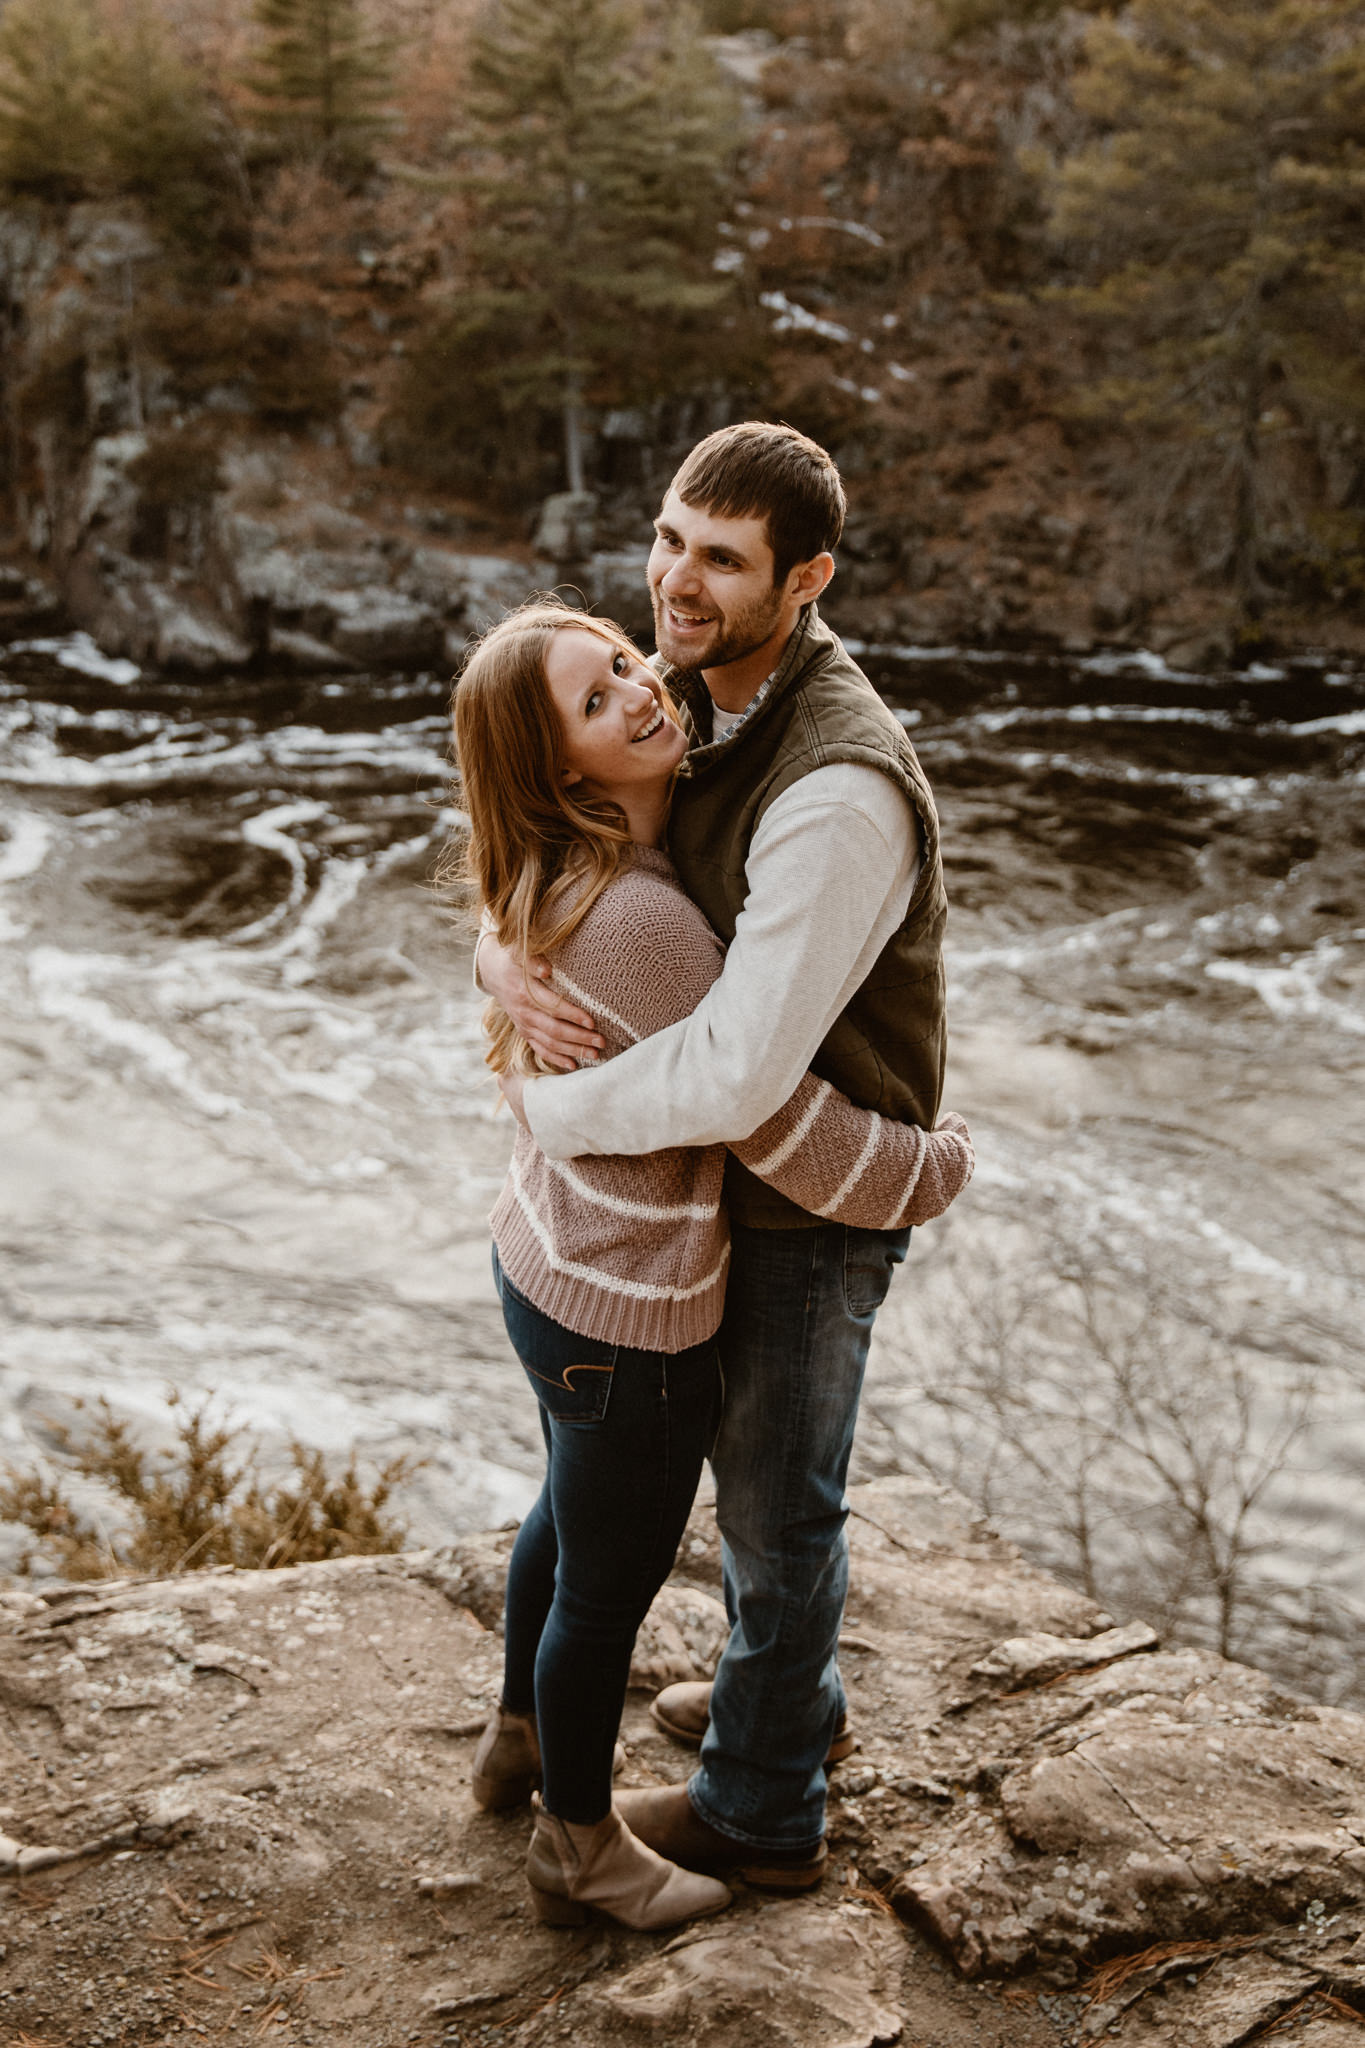 Couple laughing during their adventurous engagement photo session overlooking Taylors Falls, Minnesota.